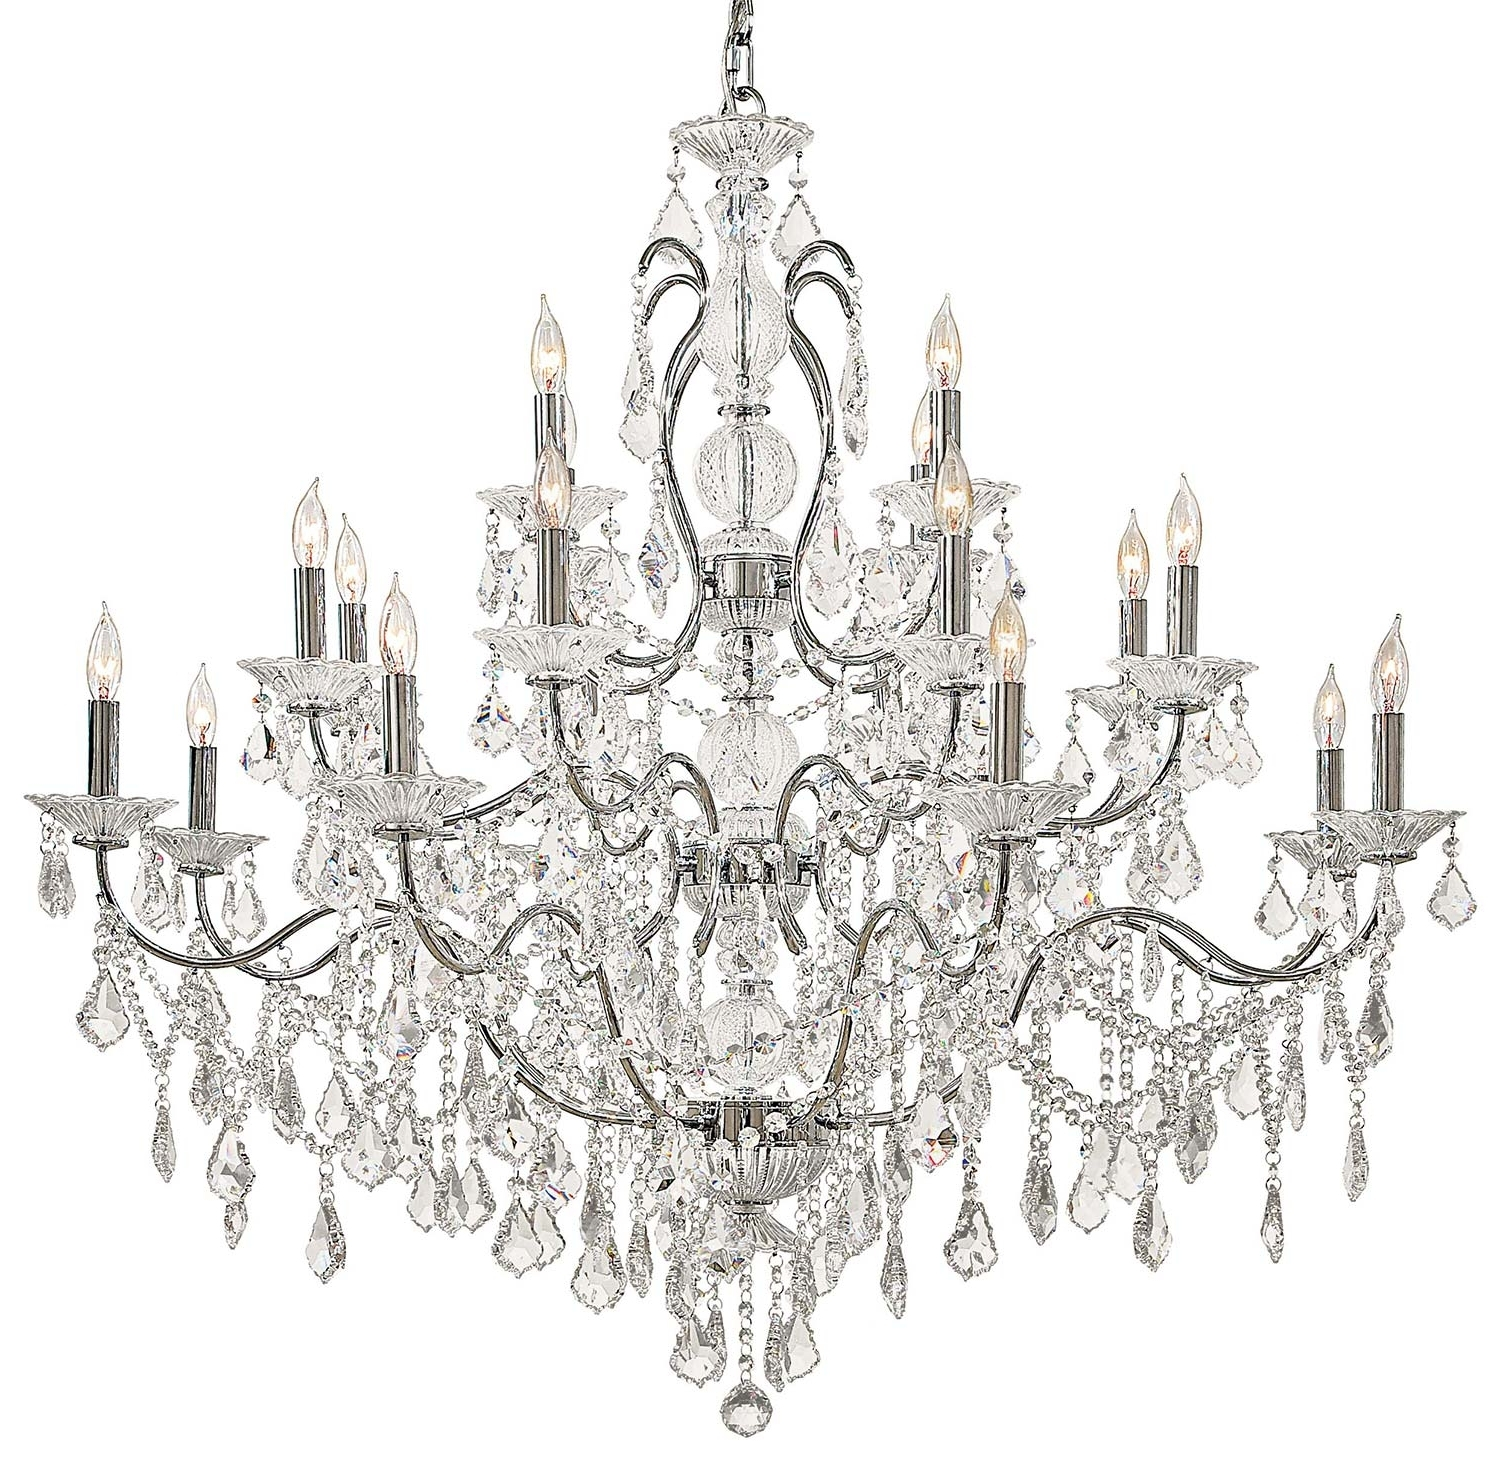 Fashionable Chandeliers Vintage With Light : Chandelier Crystals Vintage Php White Dining Crystal Room (View 7 of 15)